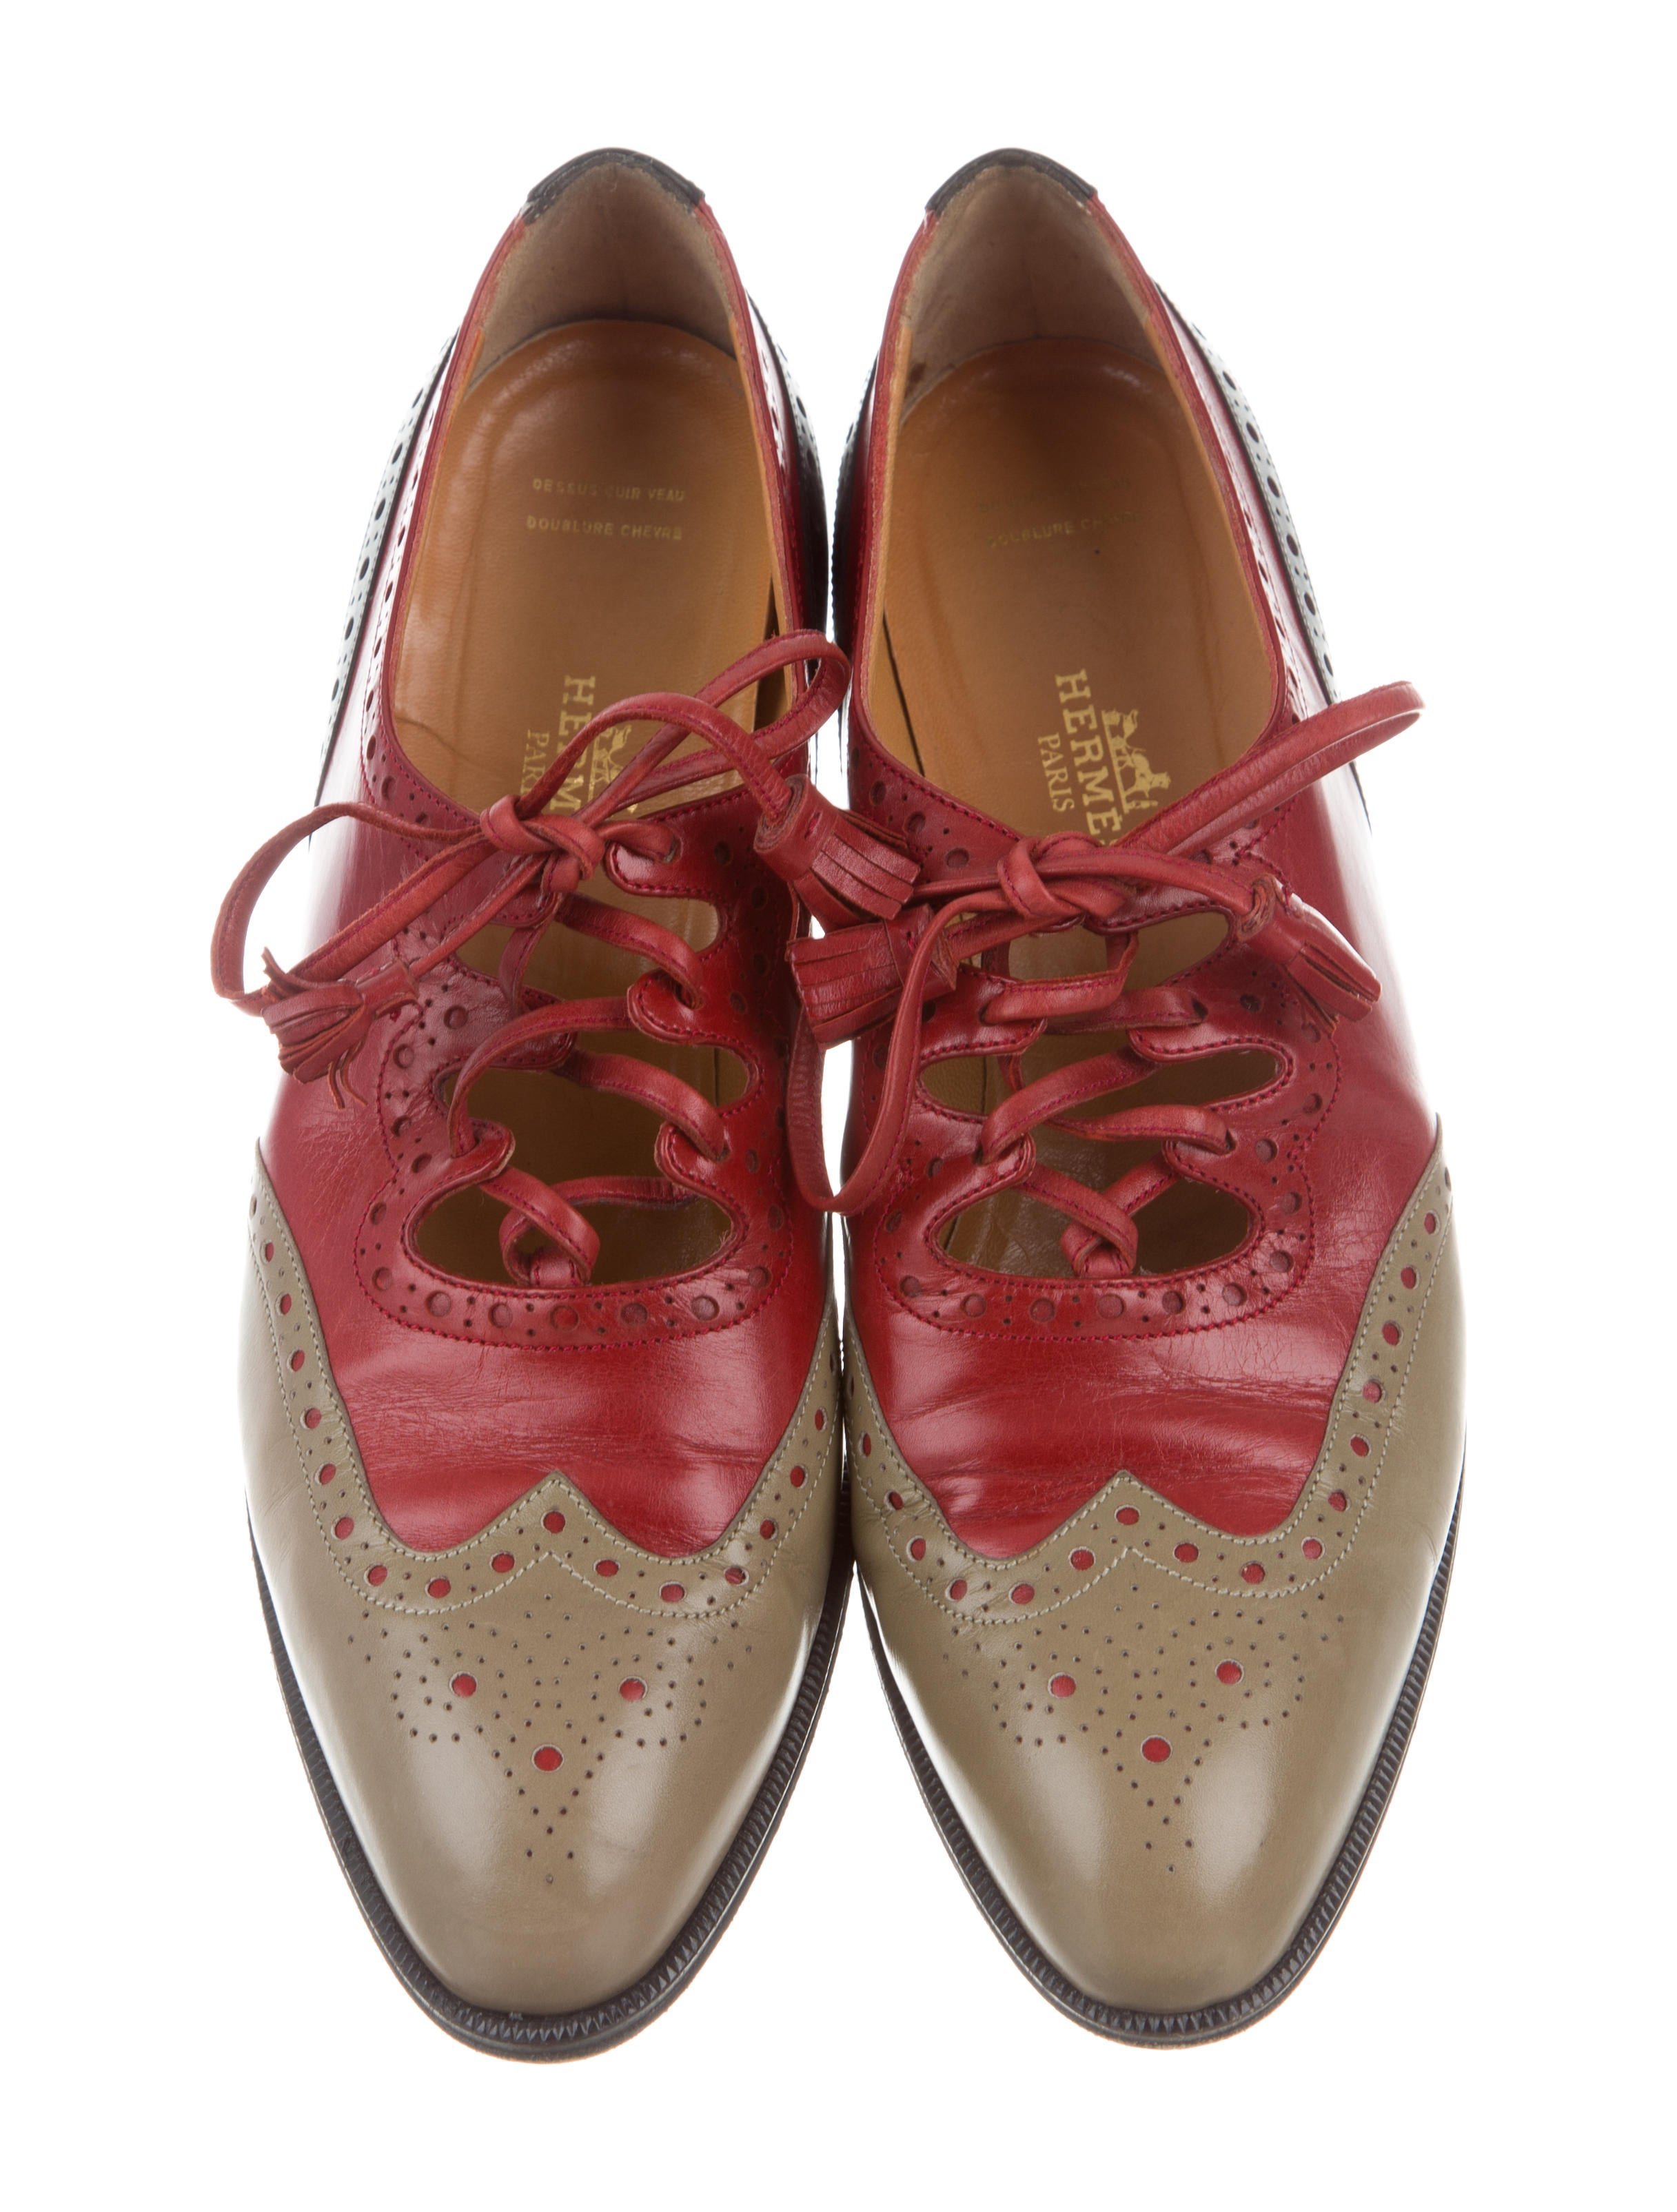 Hermès Leather Bogue Oxfords buy cheap amazing price high quality online D7F70